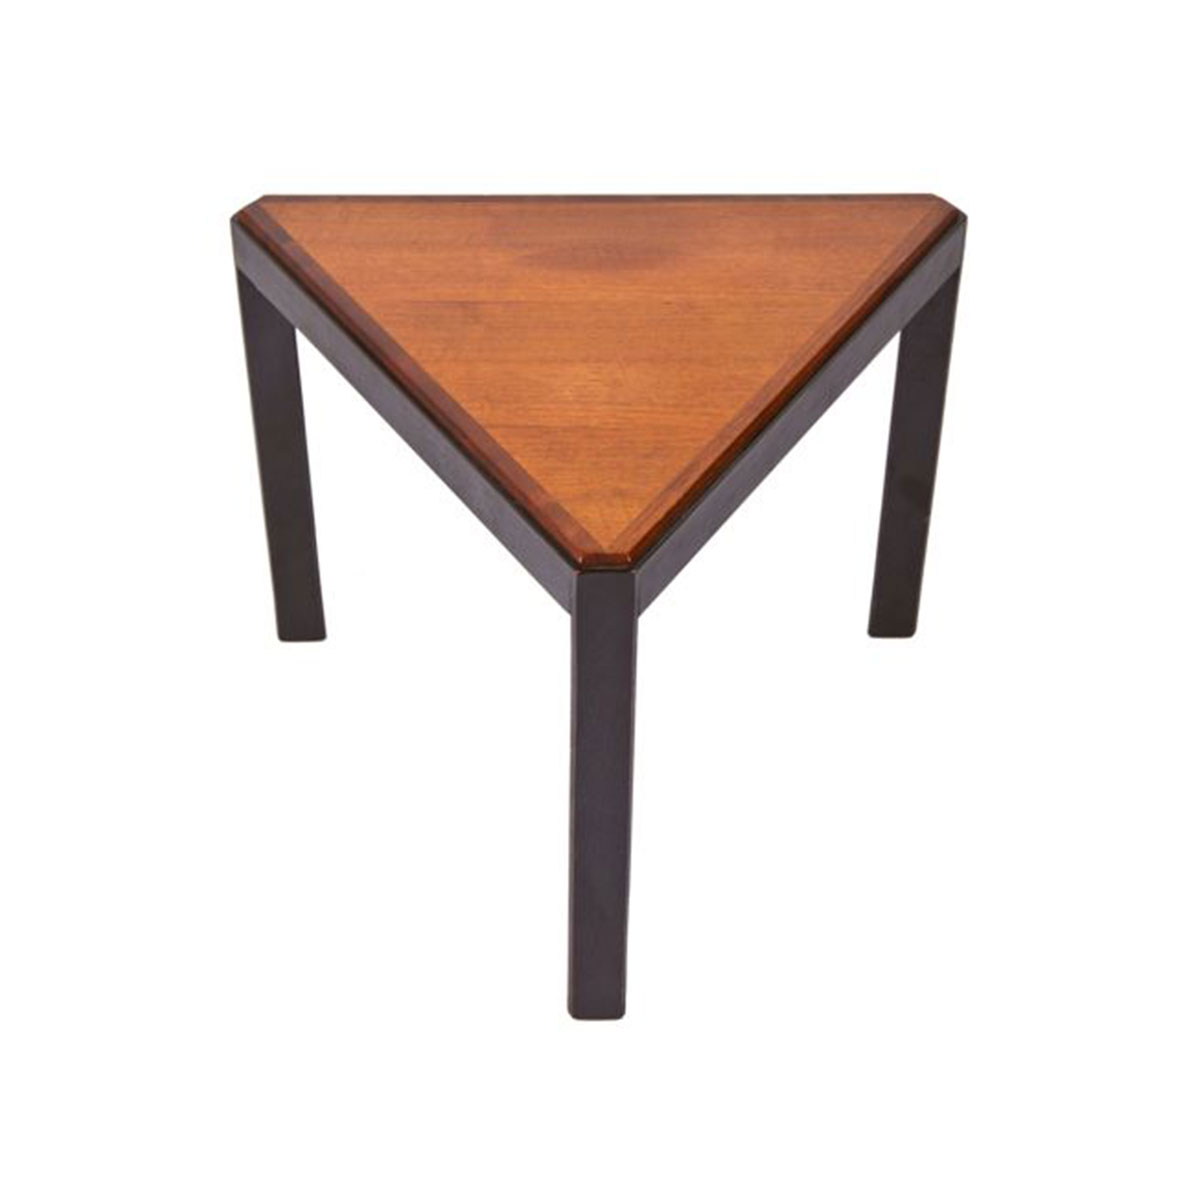 modern mobler triangularcorneraccenttable corner accent table triangular small couch side half moon console antique oak kids plastic nic extra large lamp shades white marble and